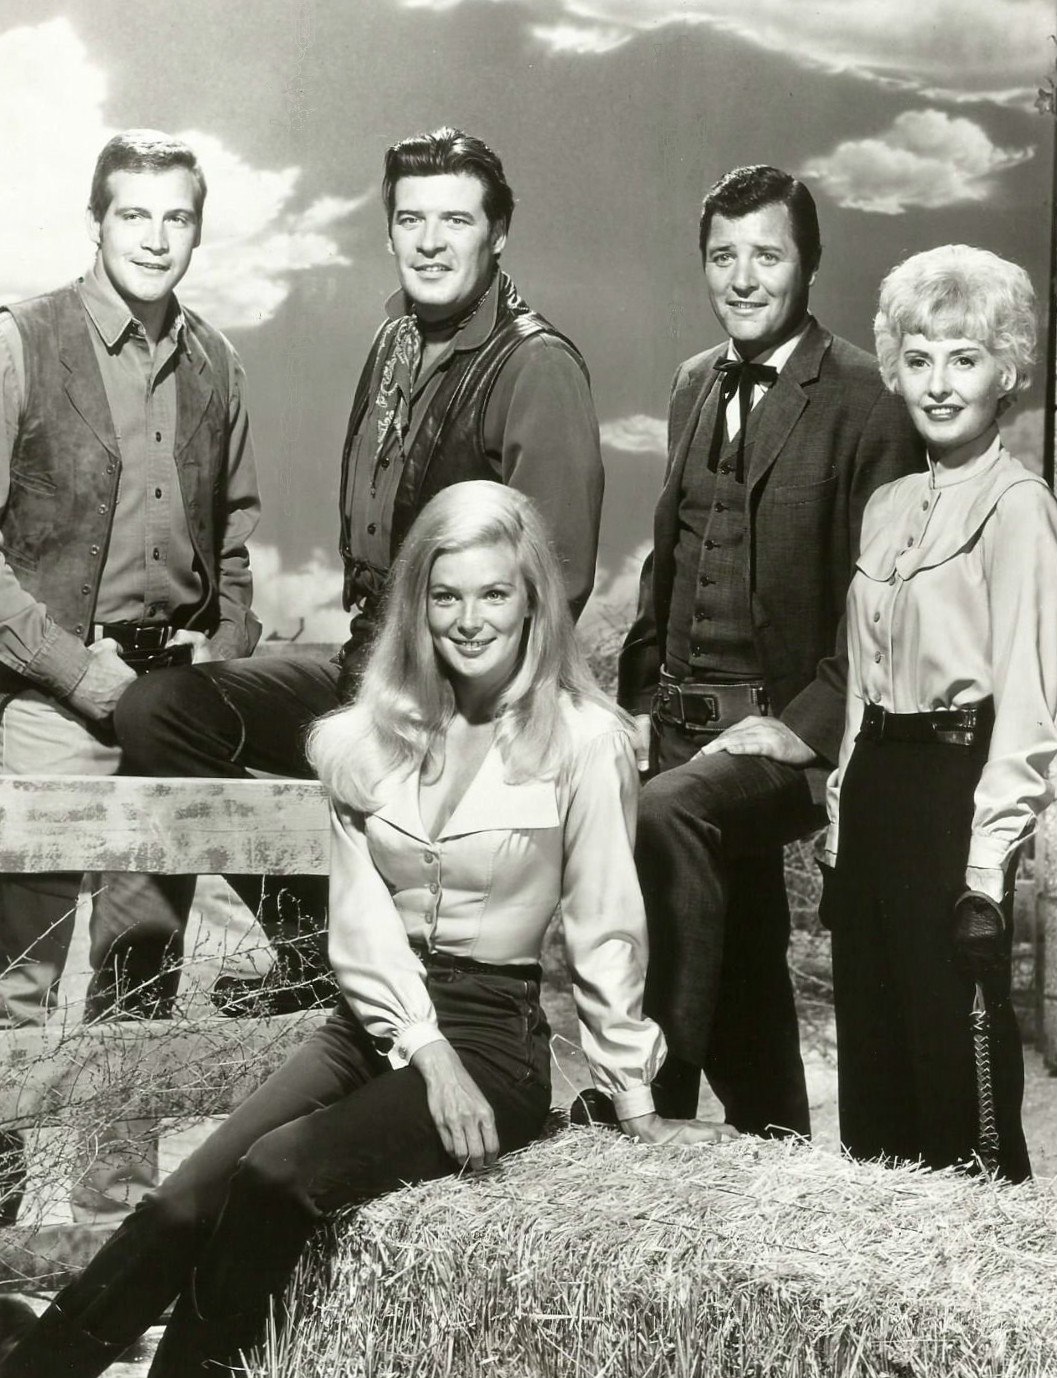 File:Big Valley Cast 1967.jpg - Wikimedia Commons